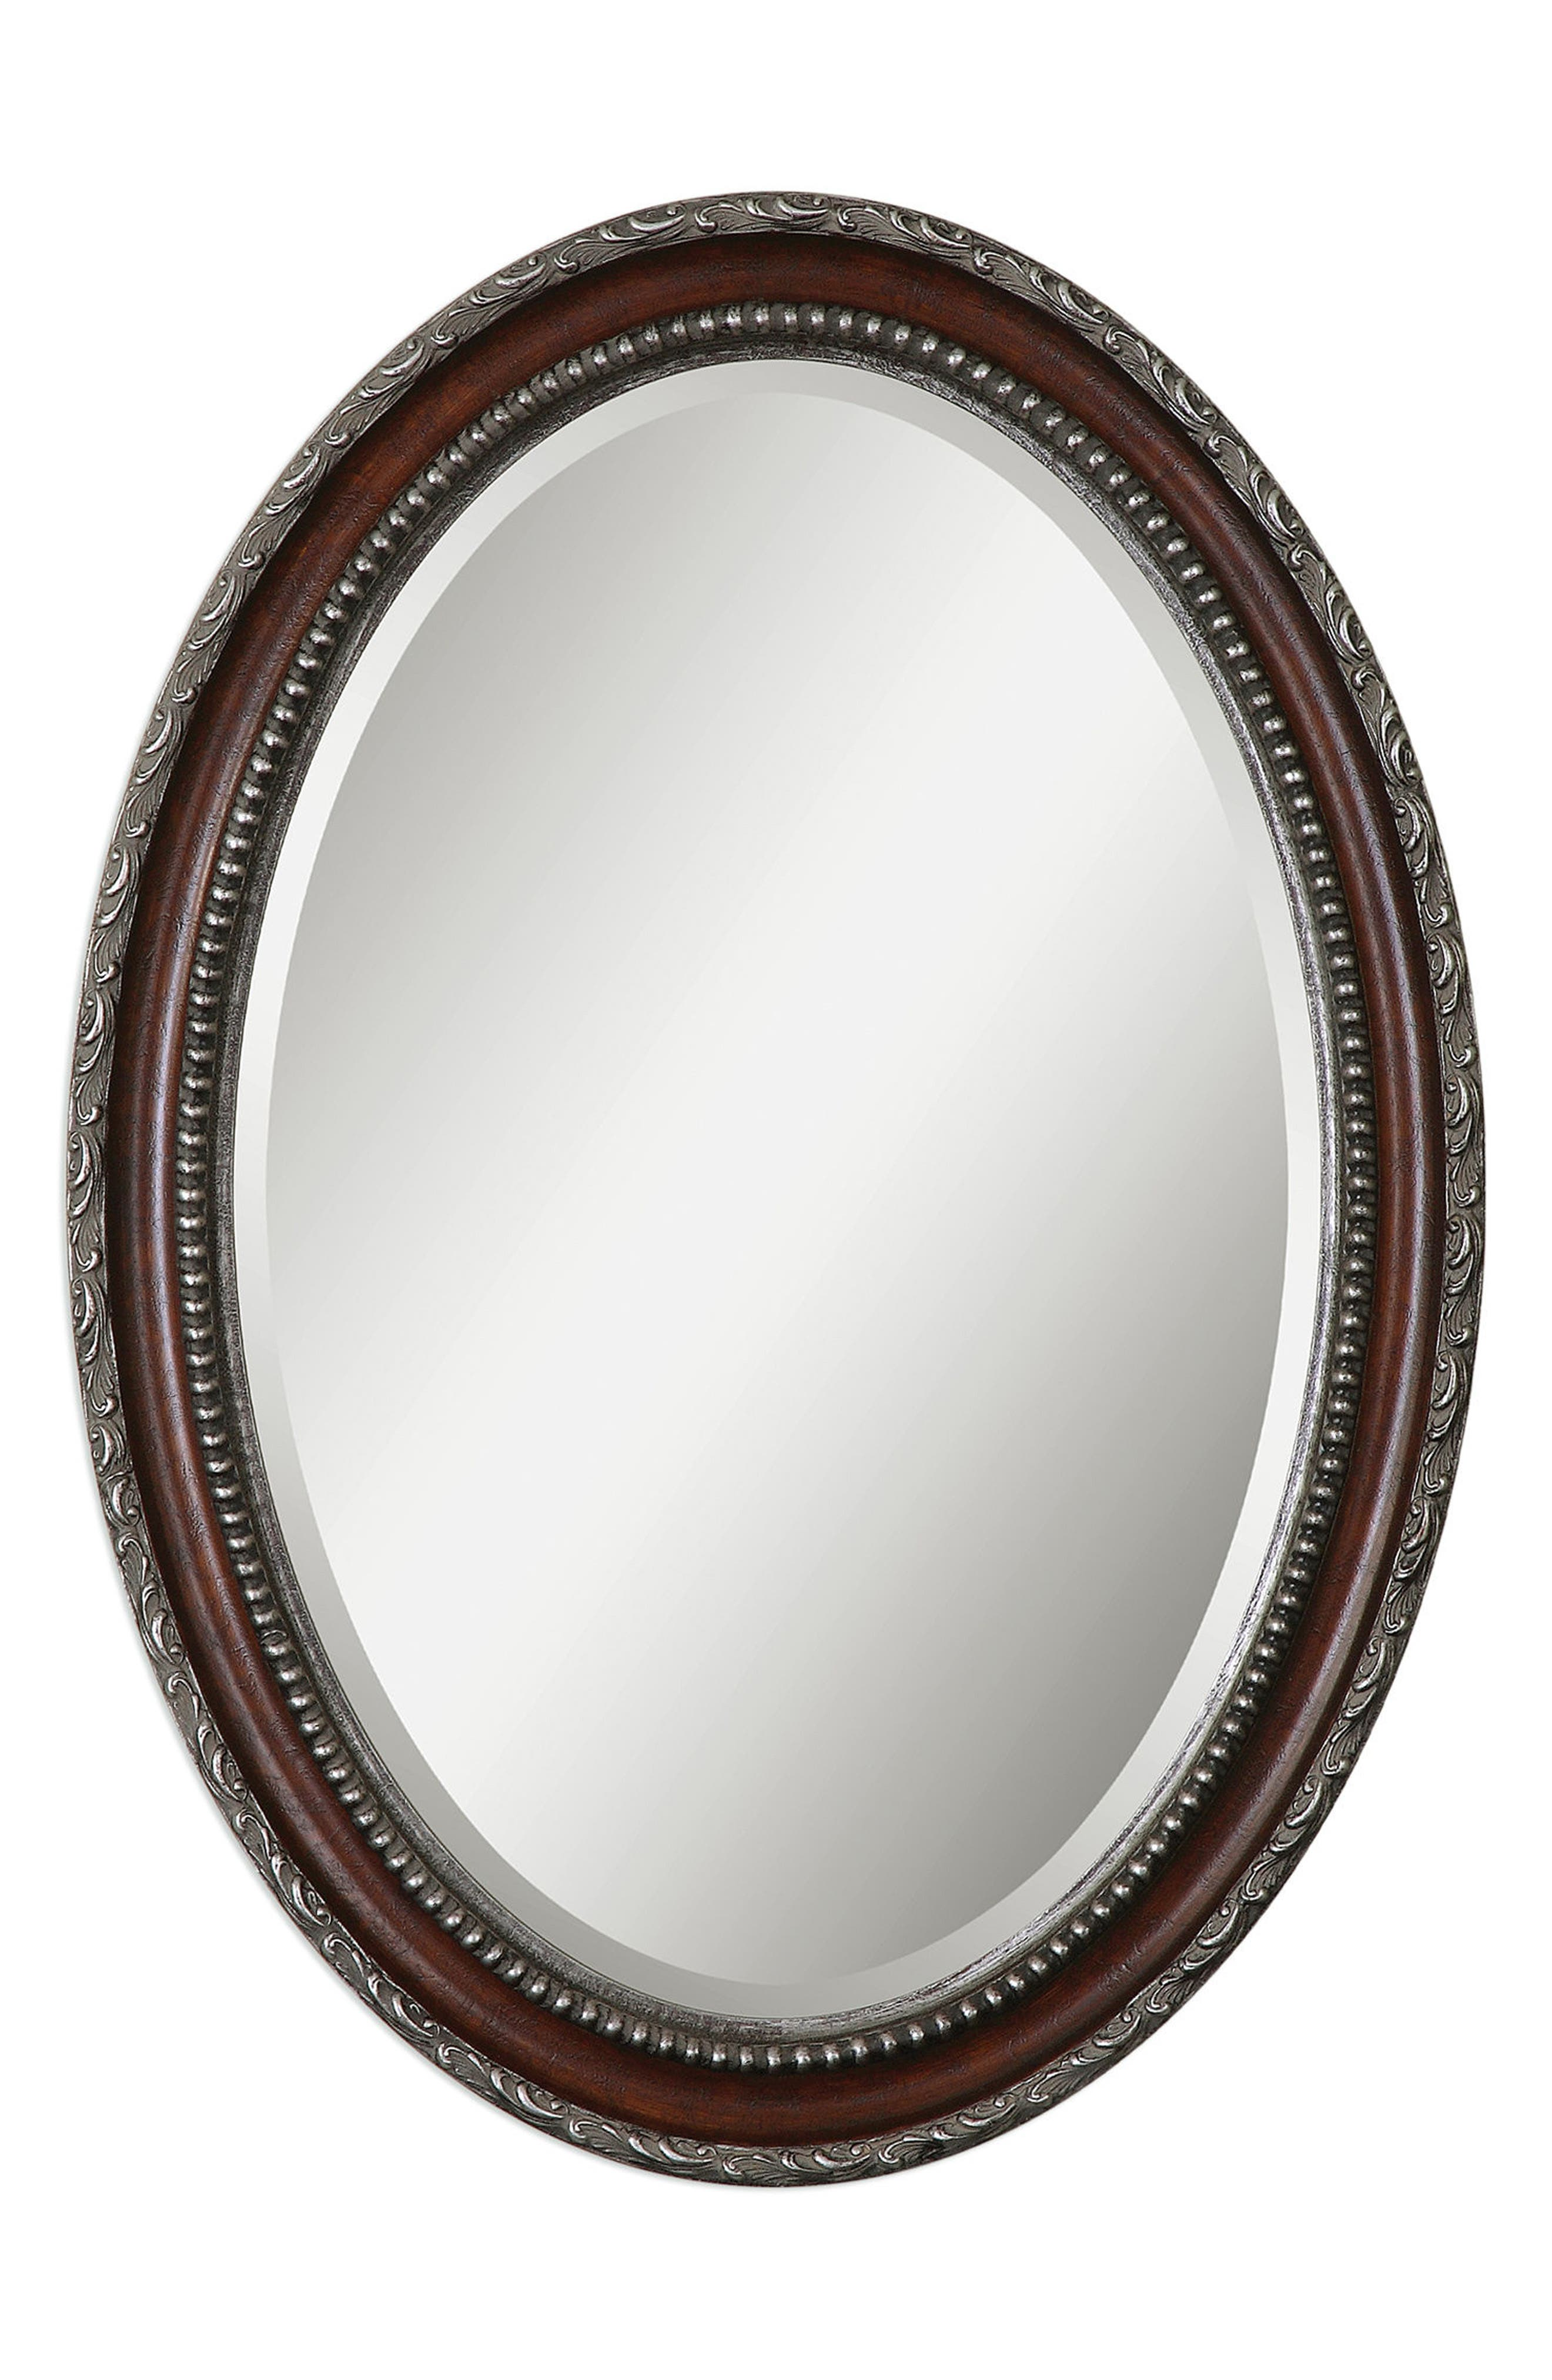 Main Image - Uttermost Montrose Oval Wall Mirror